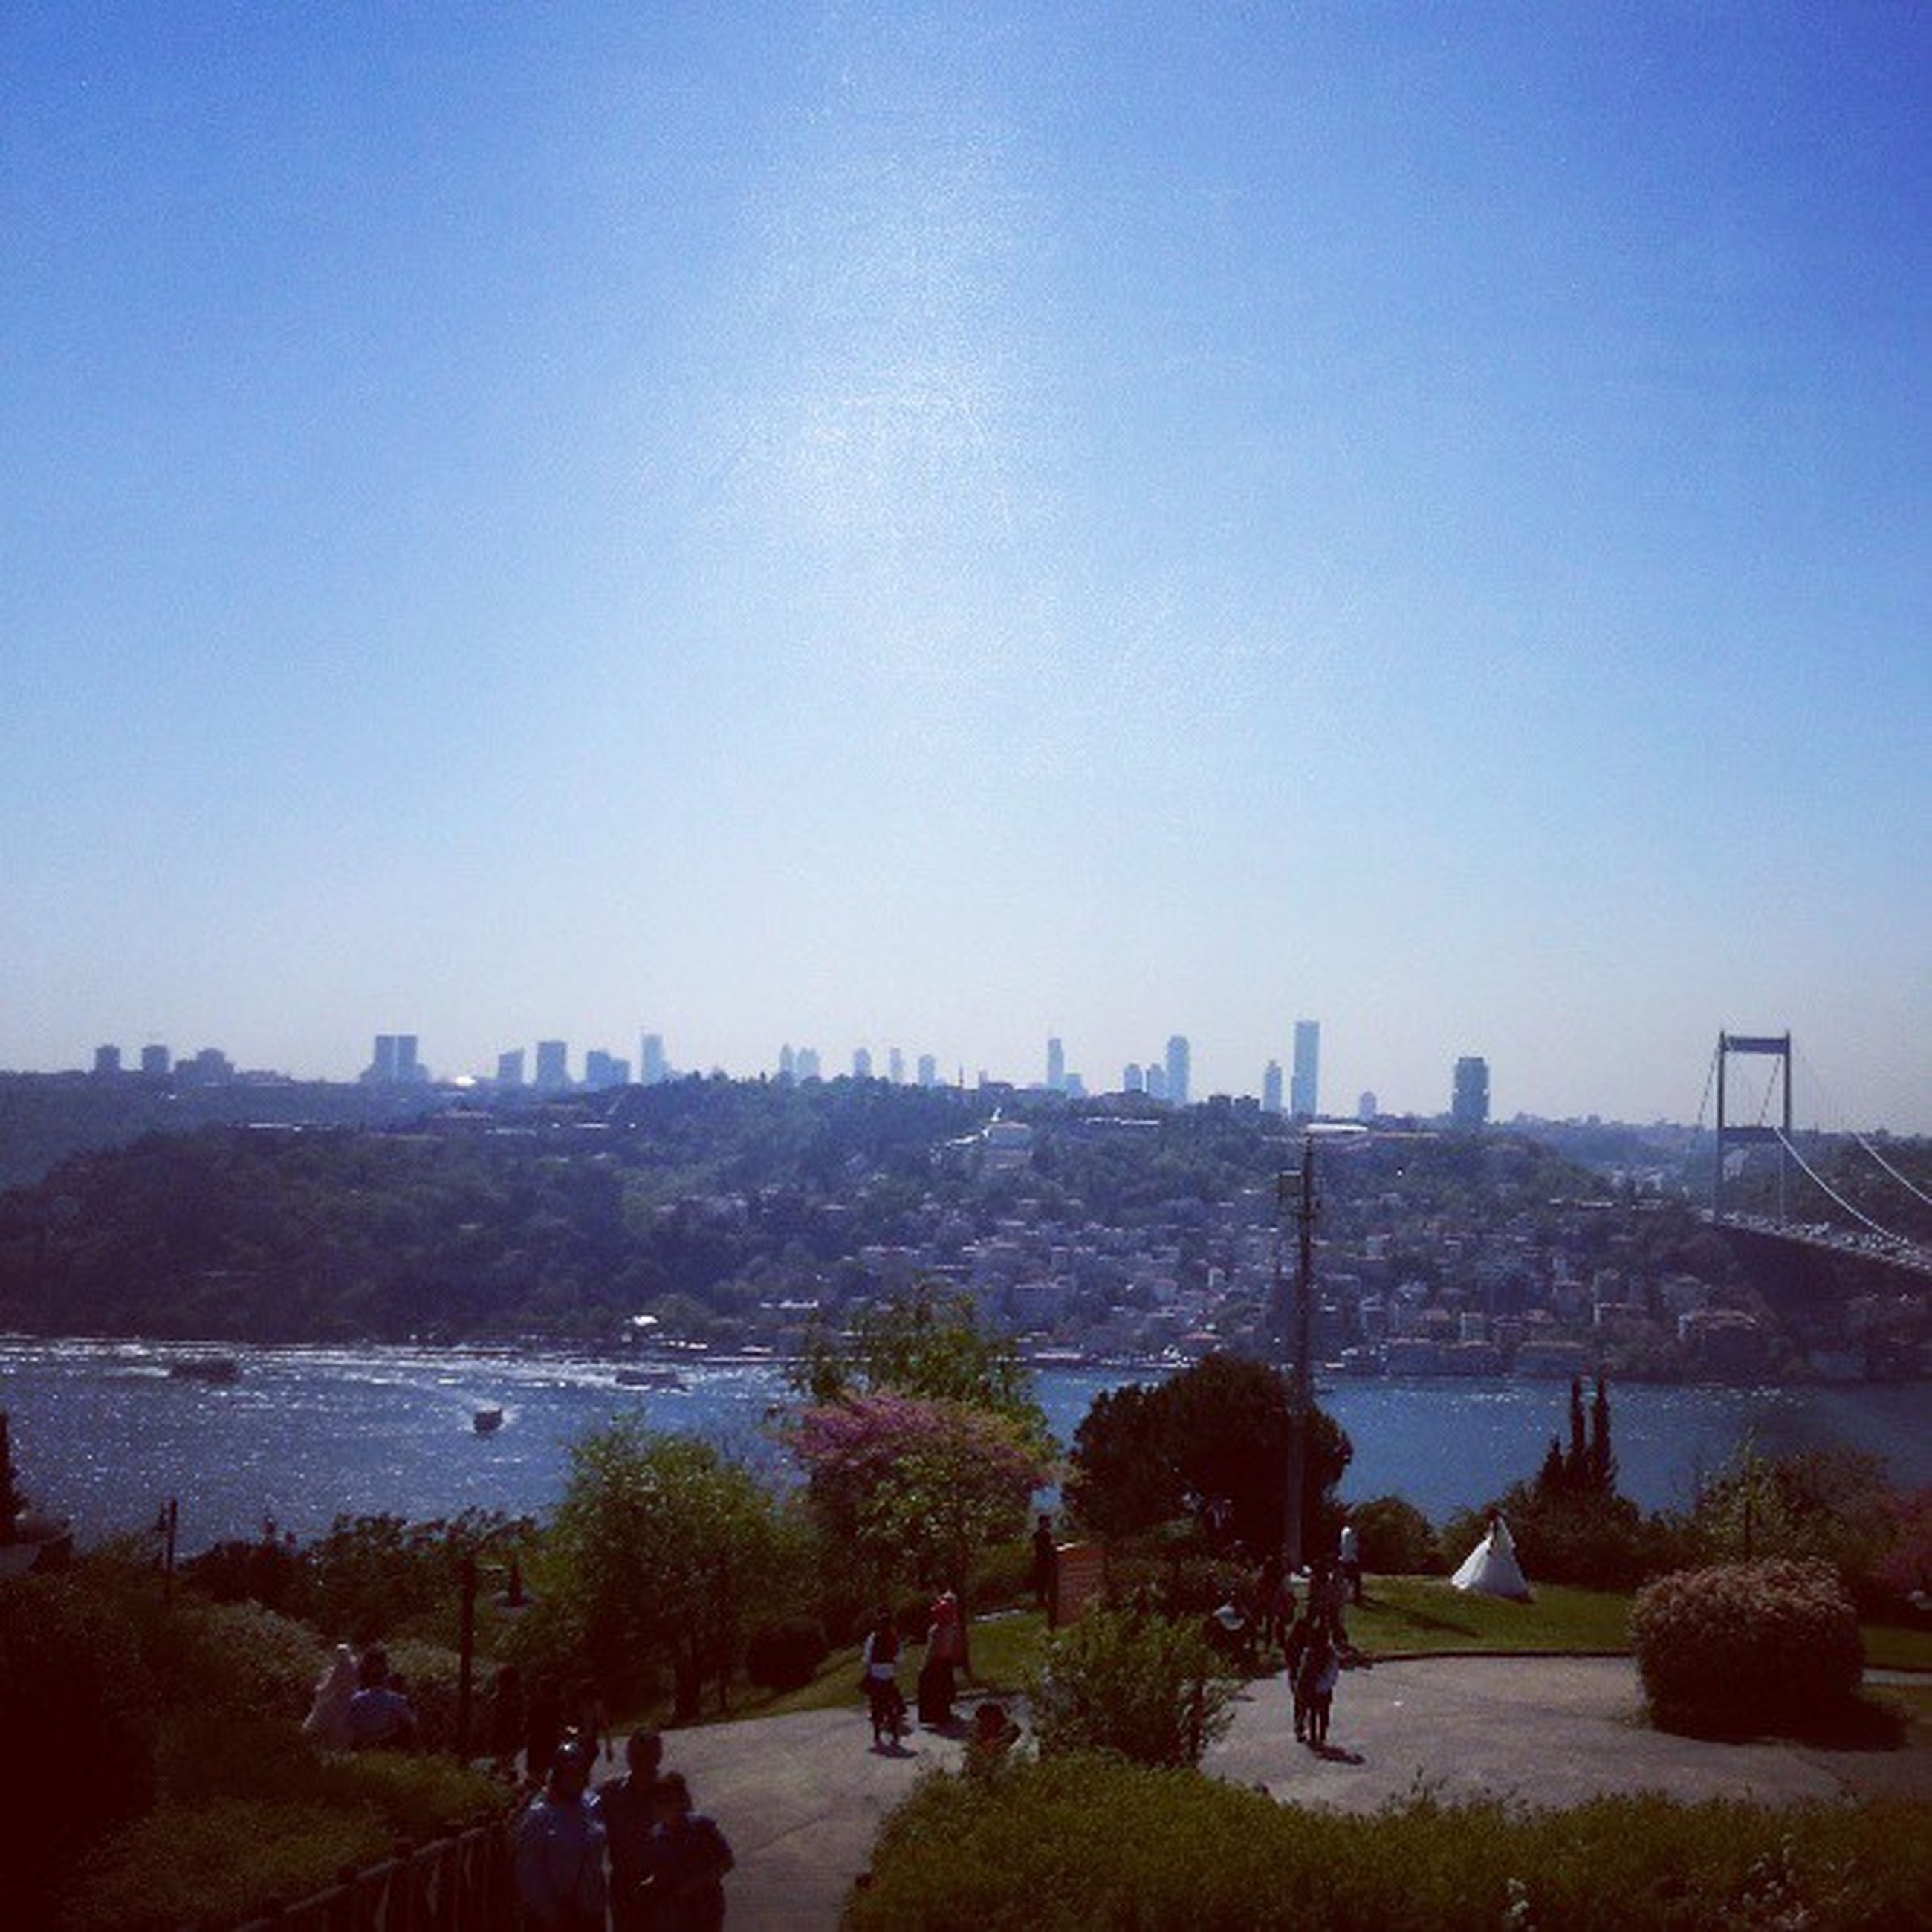 clear sky, copy space, architecture, built structure, water, city, building exterior, cityscape, blue, river, tree, sea, city life, travel destinations, bridge - man made structure, incidental people, outdoors, day, large group of people, capital cities